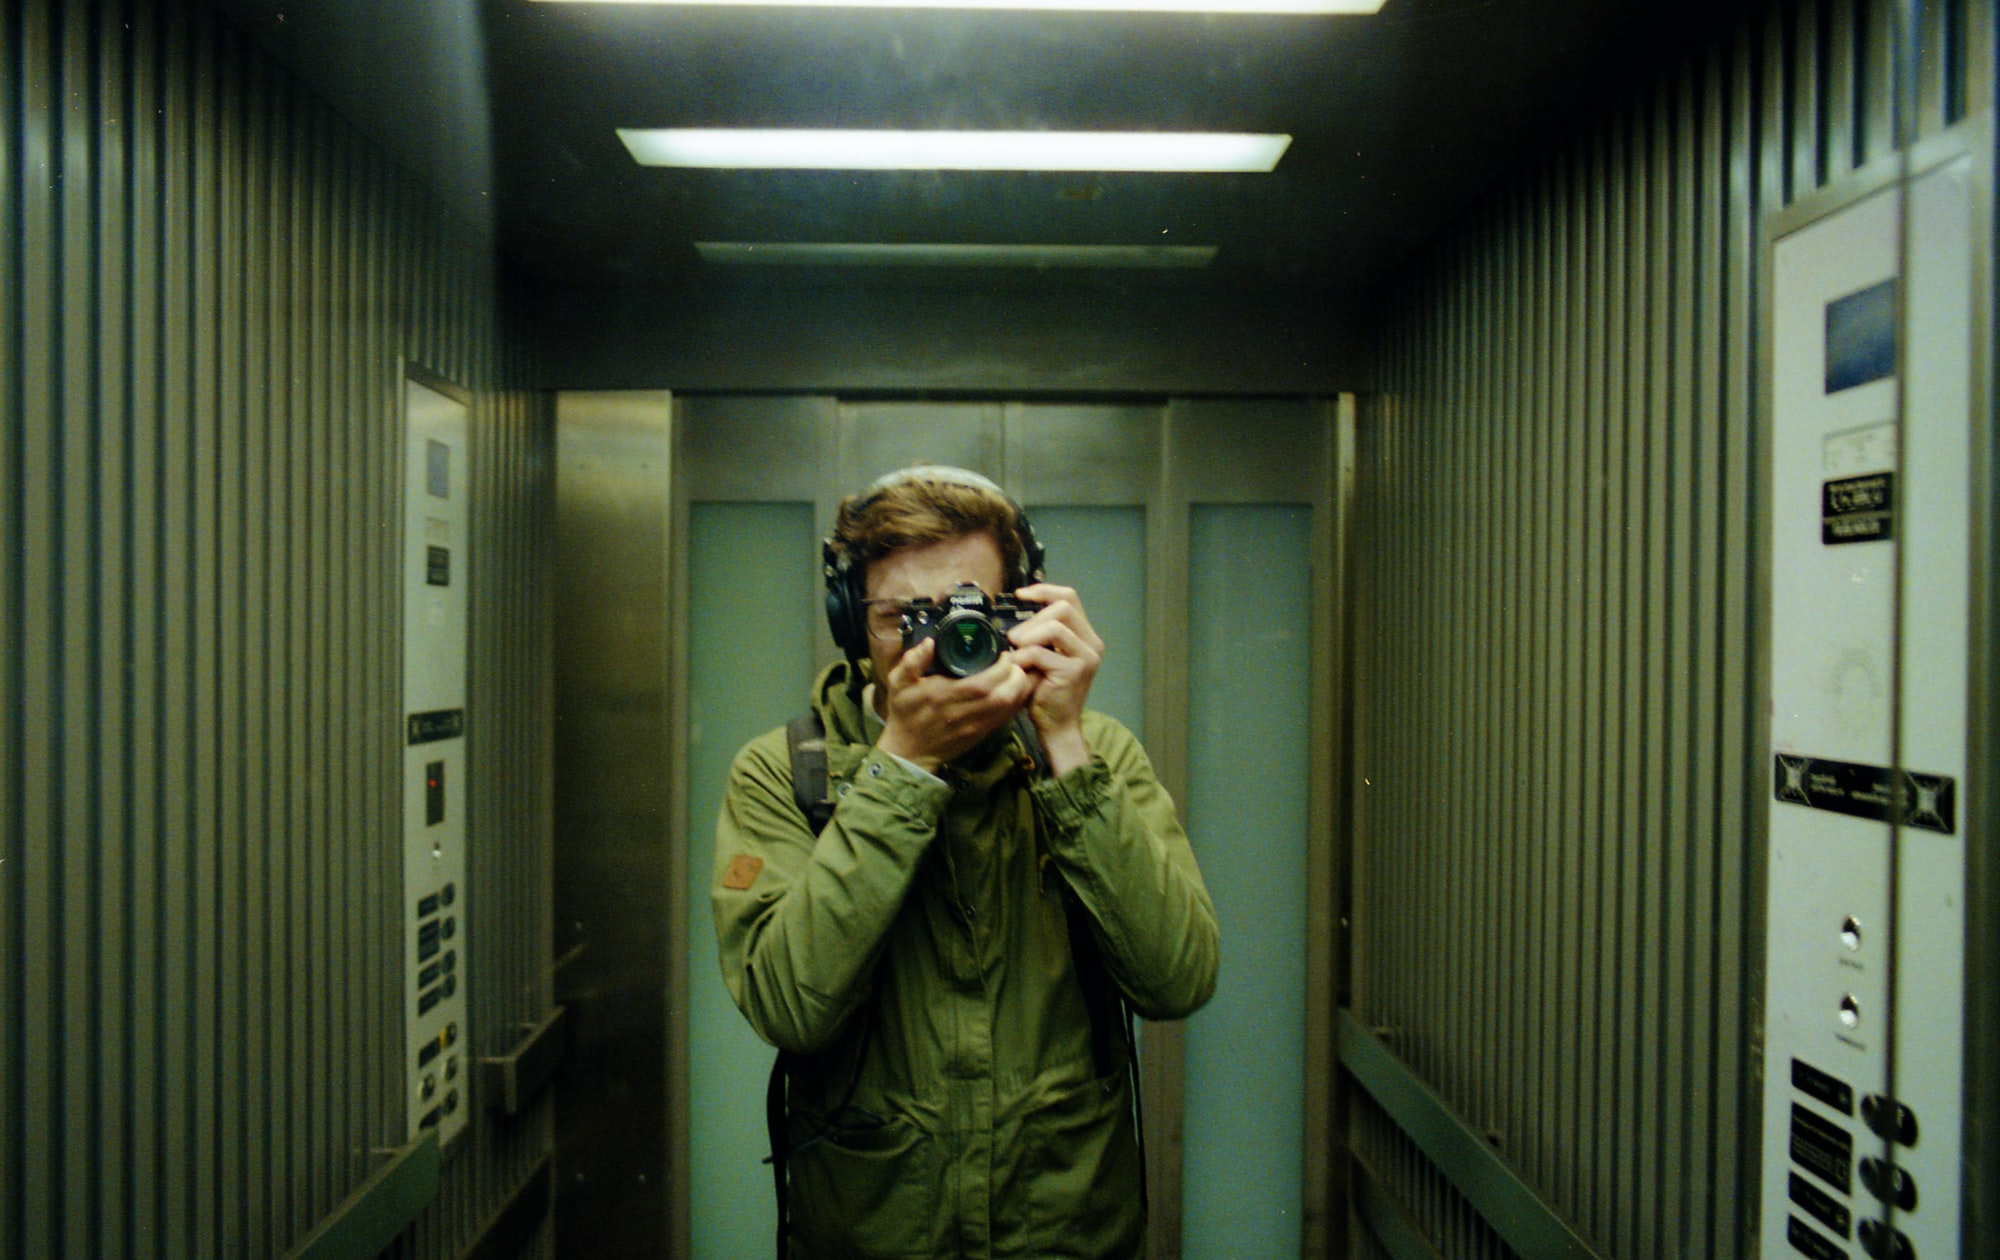 Why are there mirrors in elevators?